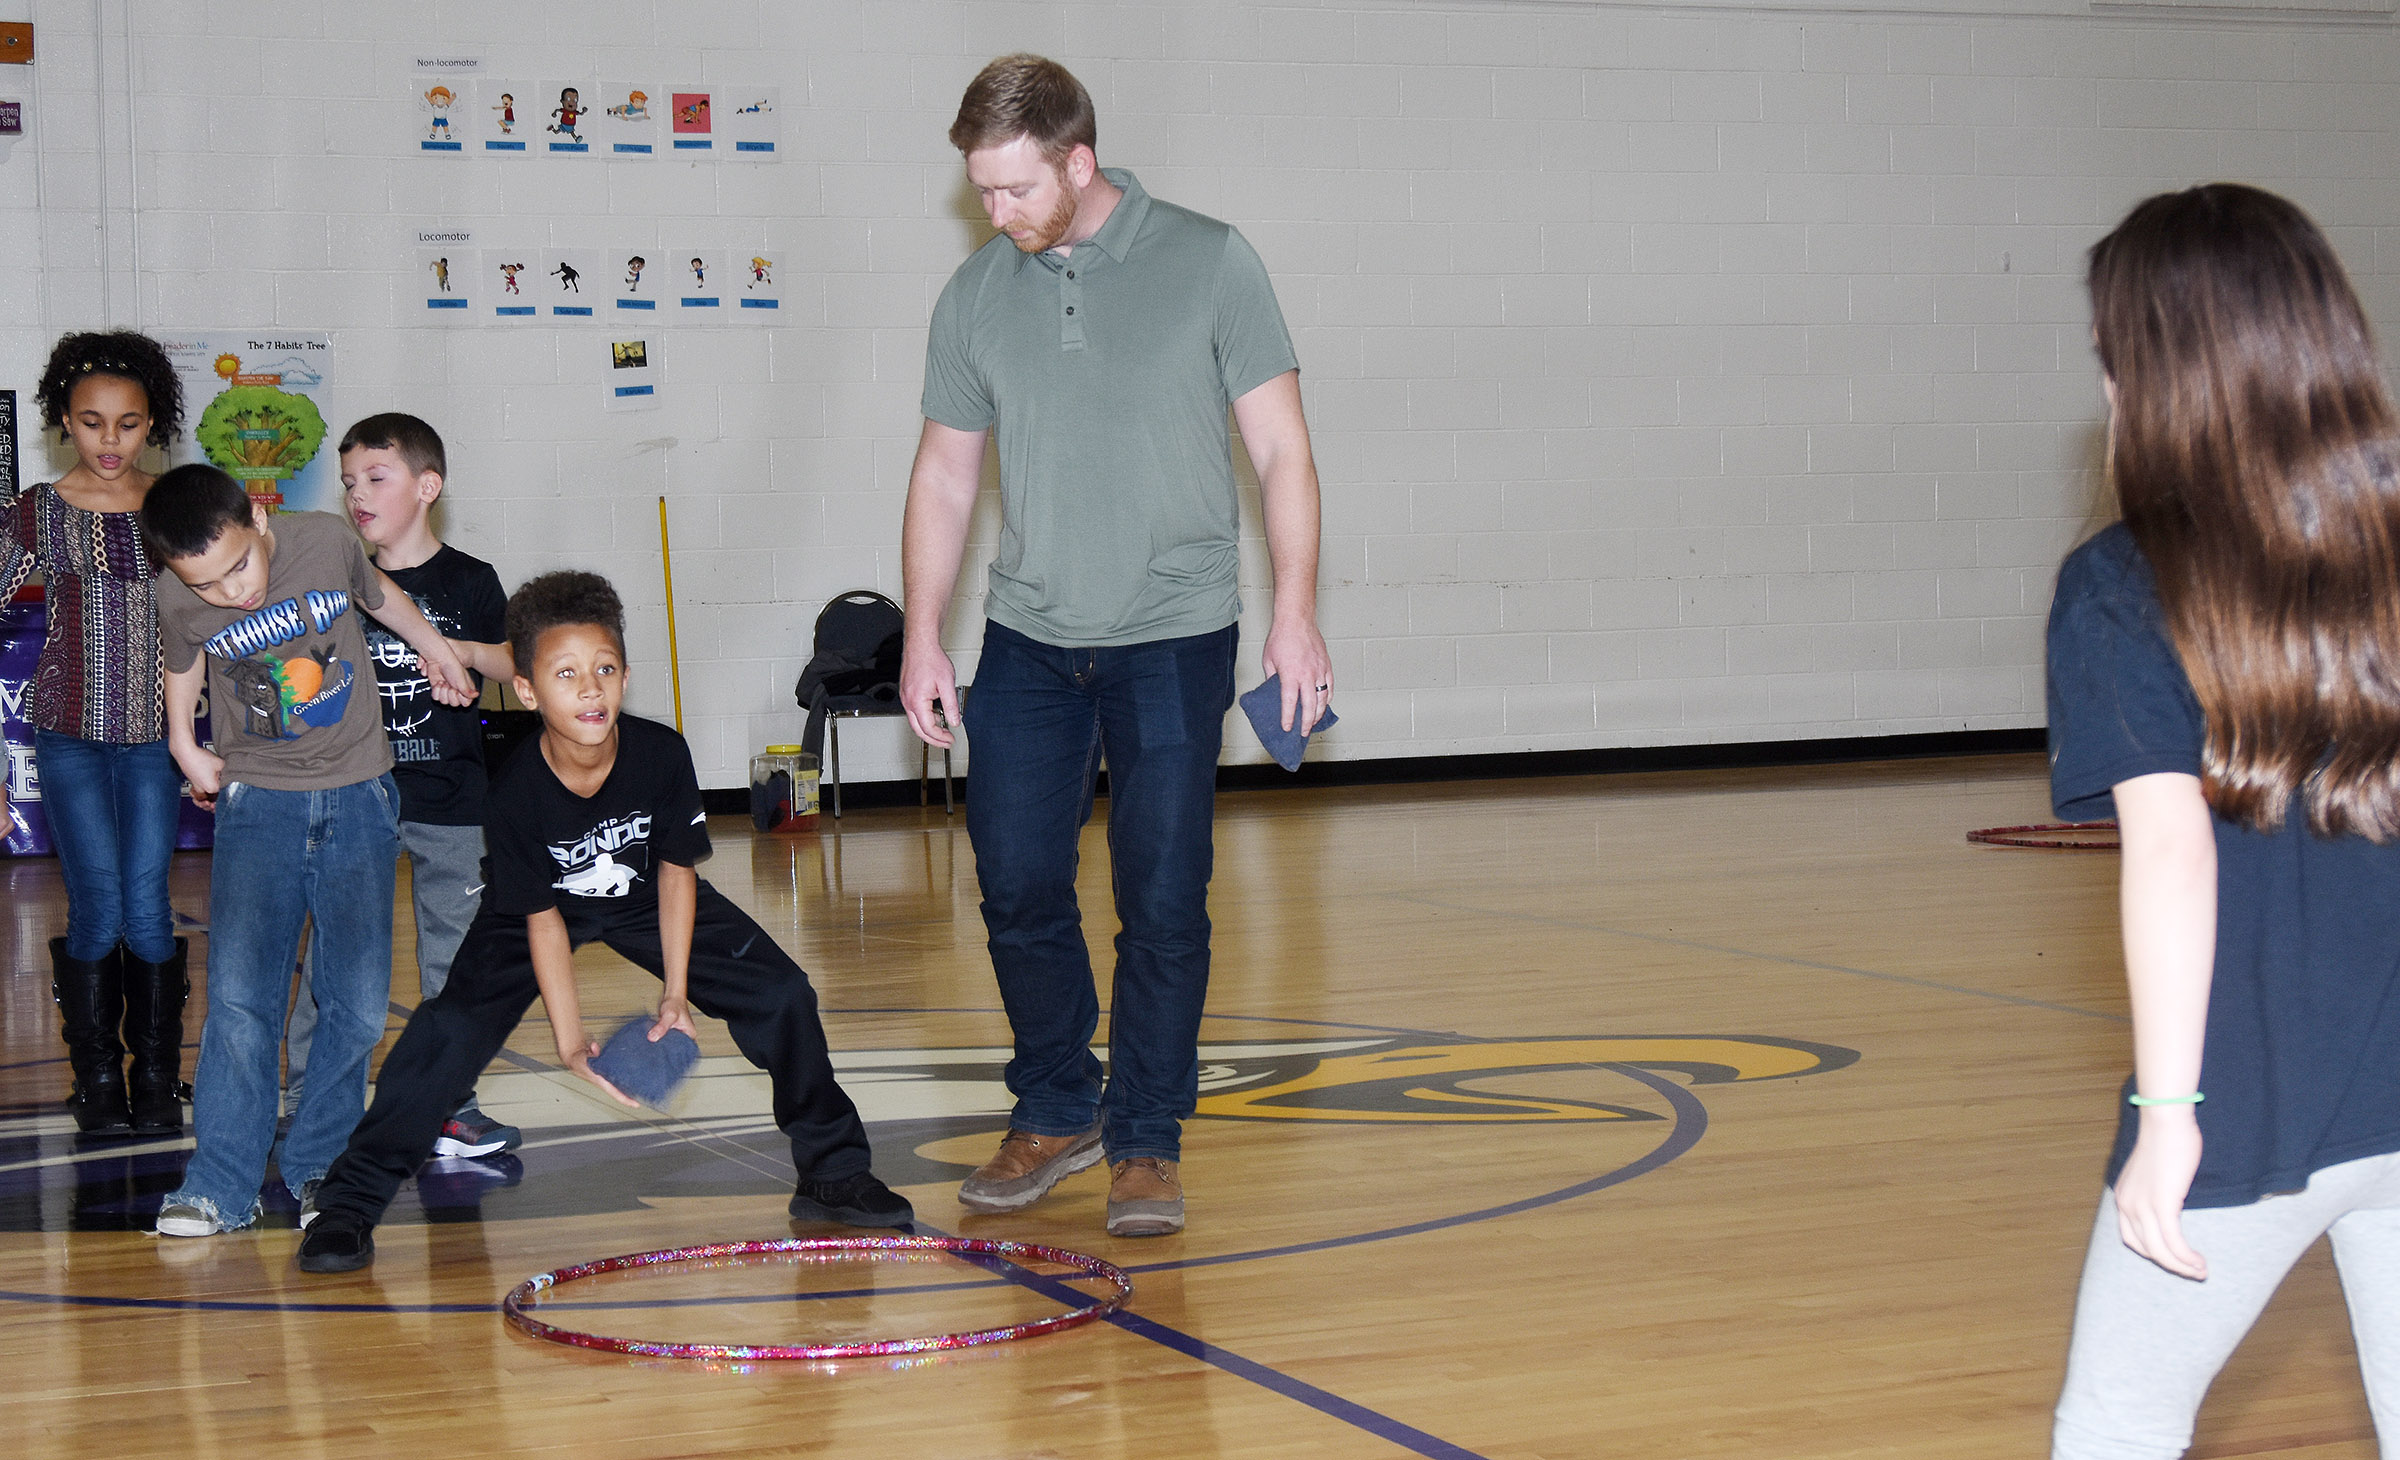 CES third-grader Rajon Taylor tosses a bean bag, with help from Campbellsville/Taylor County Chamber of Commerce Board member Luke Lawless.